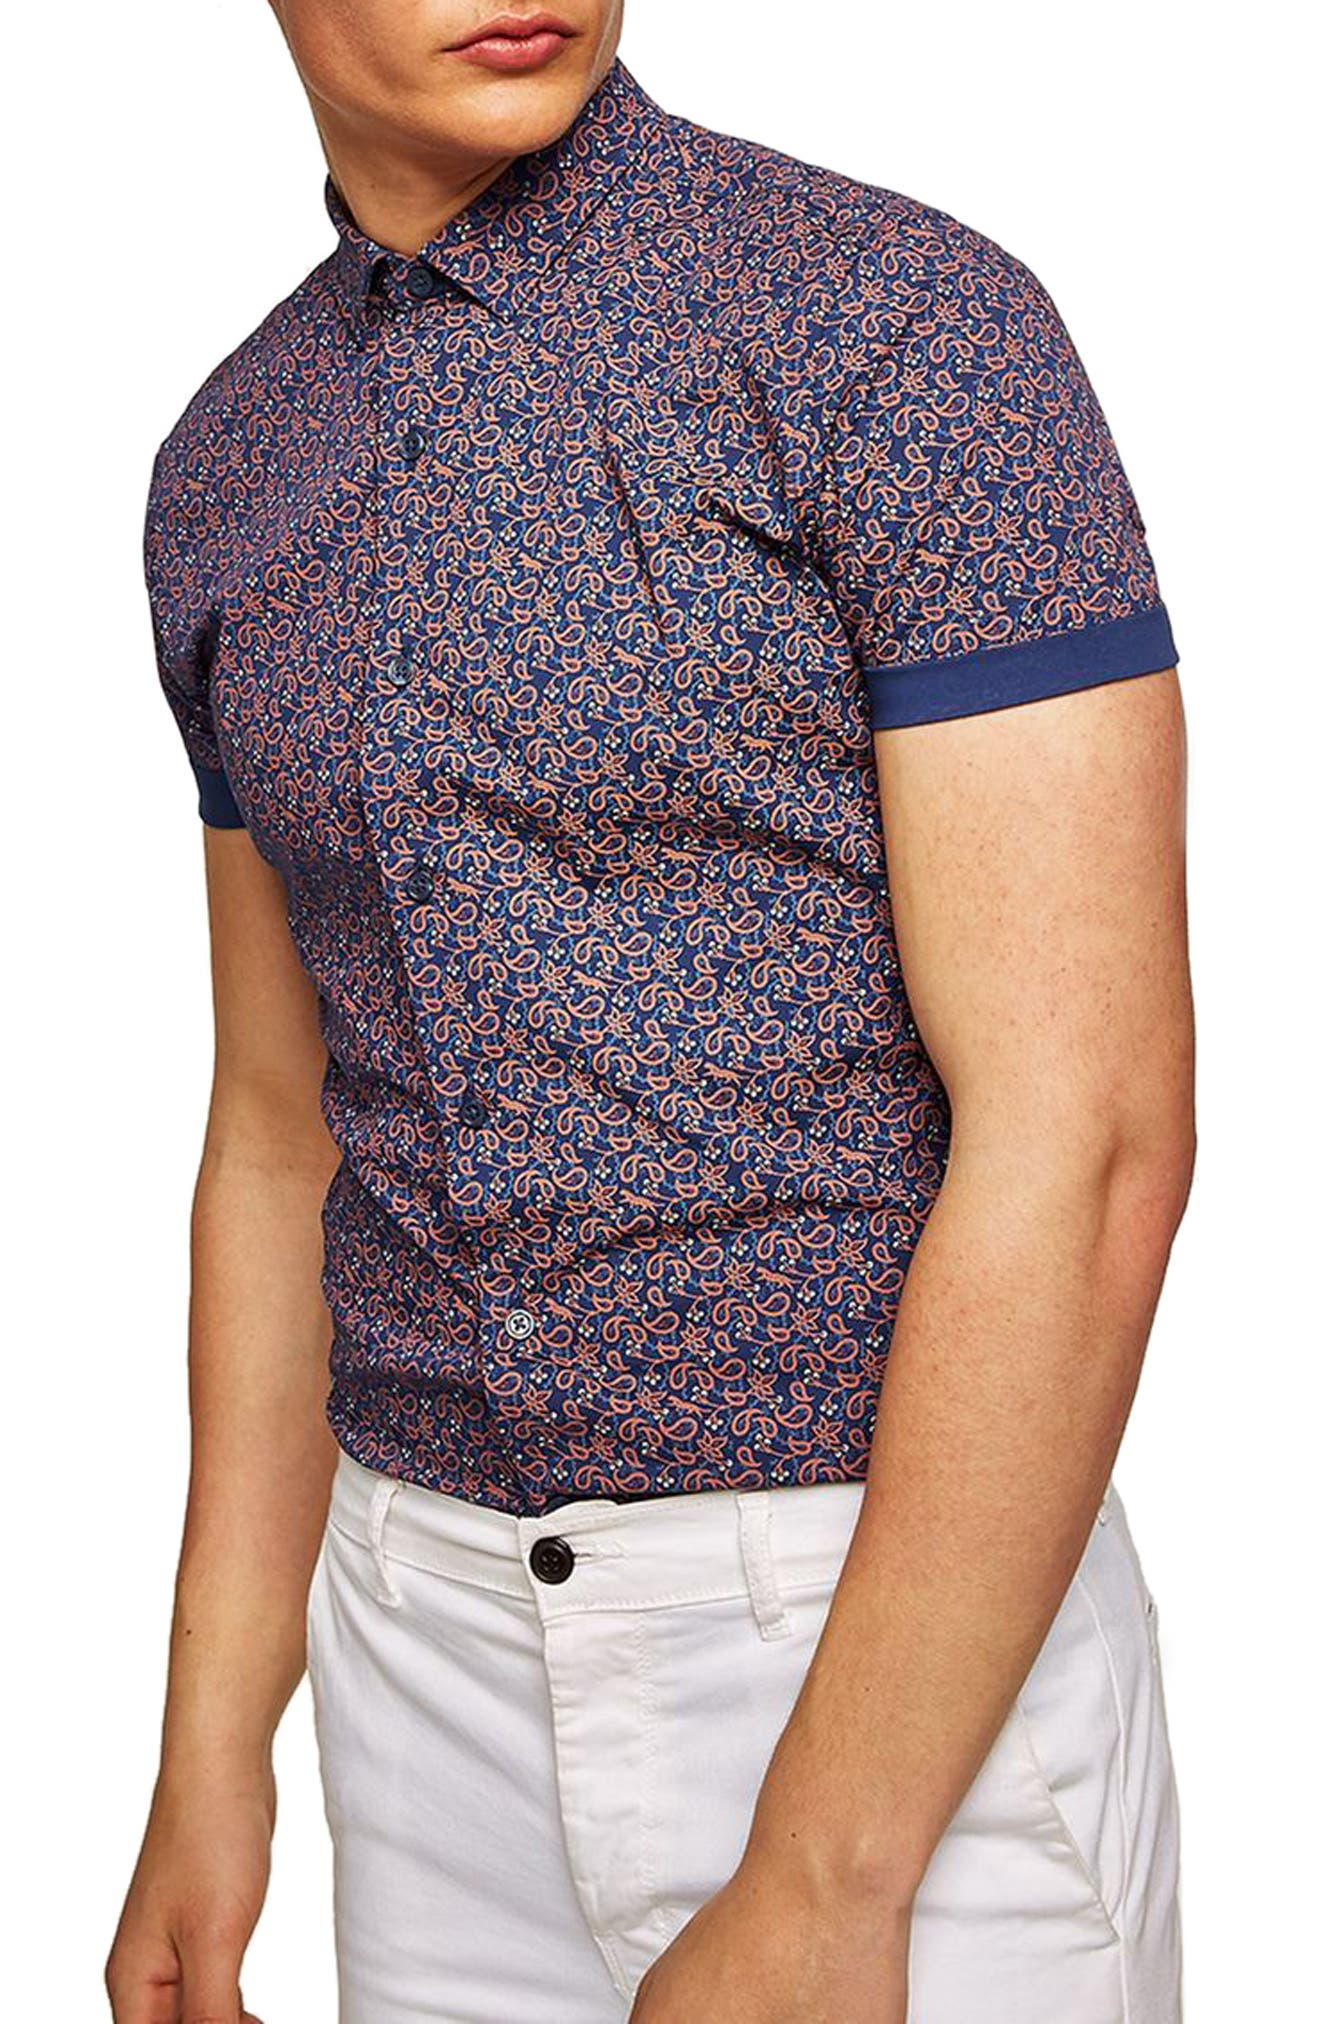 Topman Muscle Fit Eclectic Paisley Print Shirt